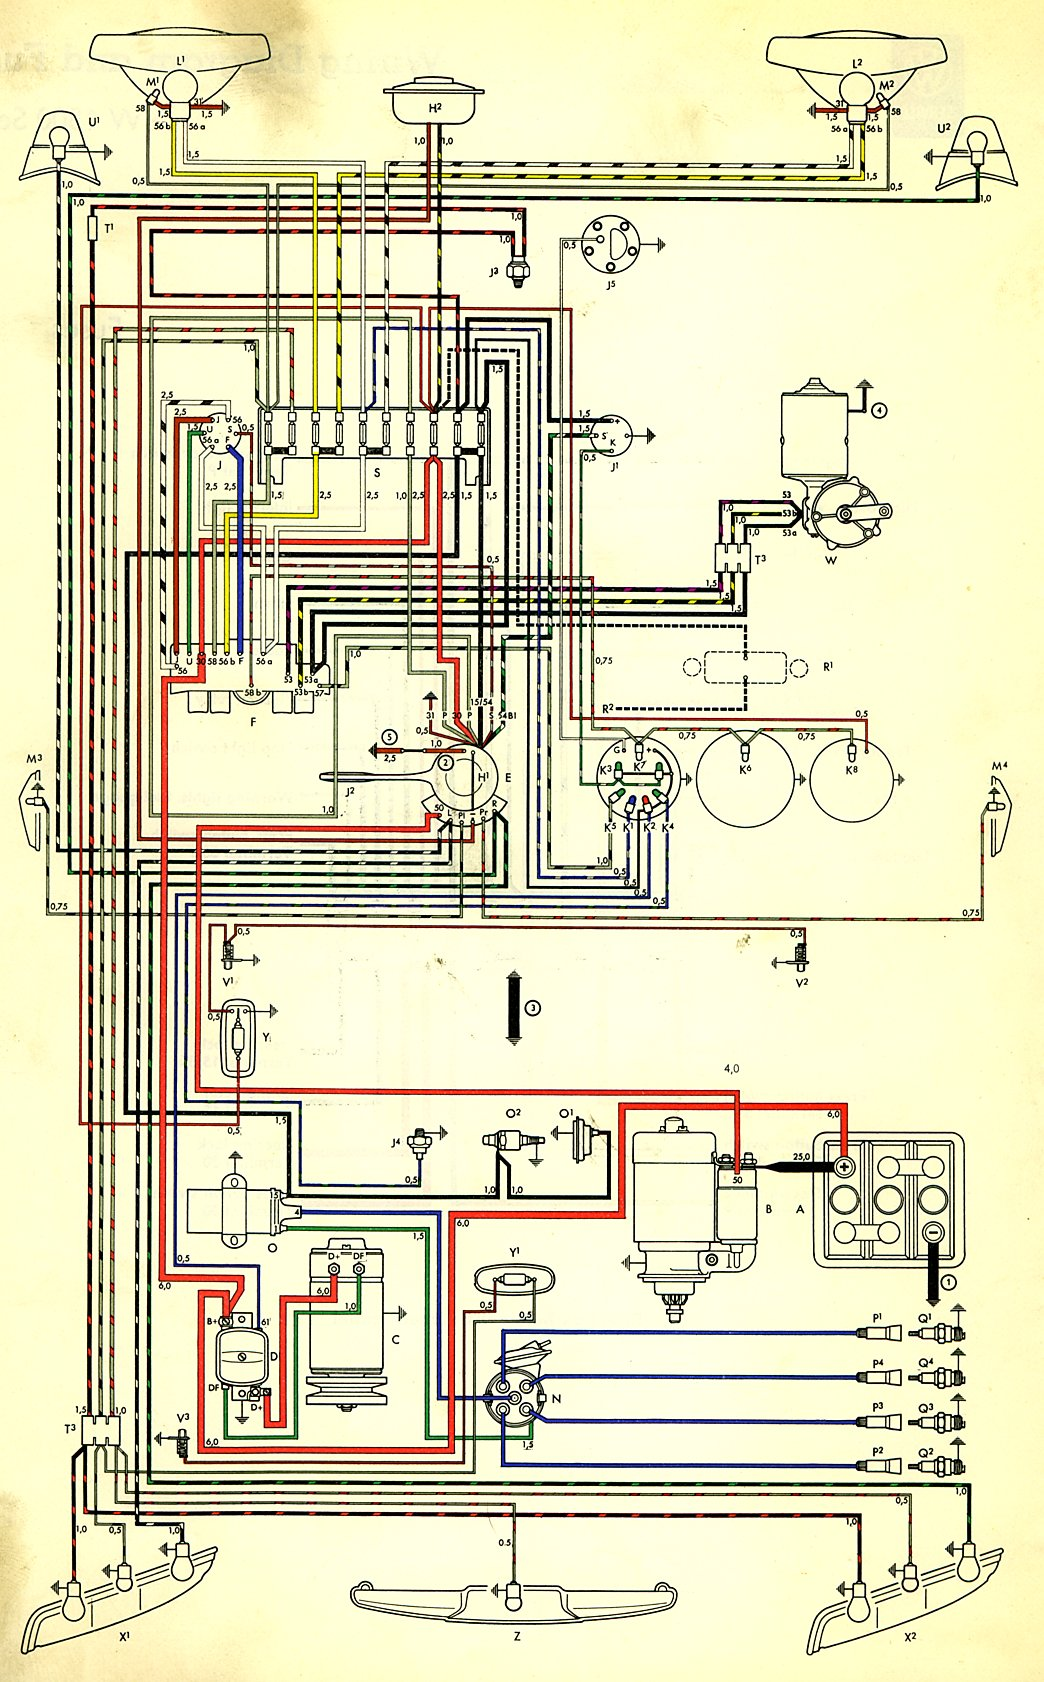 Type 3 Wiring Diagrams Painless Diagram 67 72 Chevy